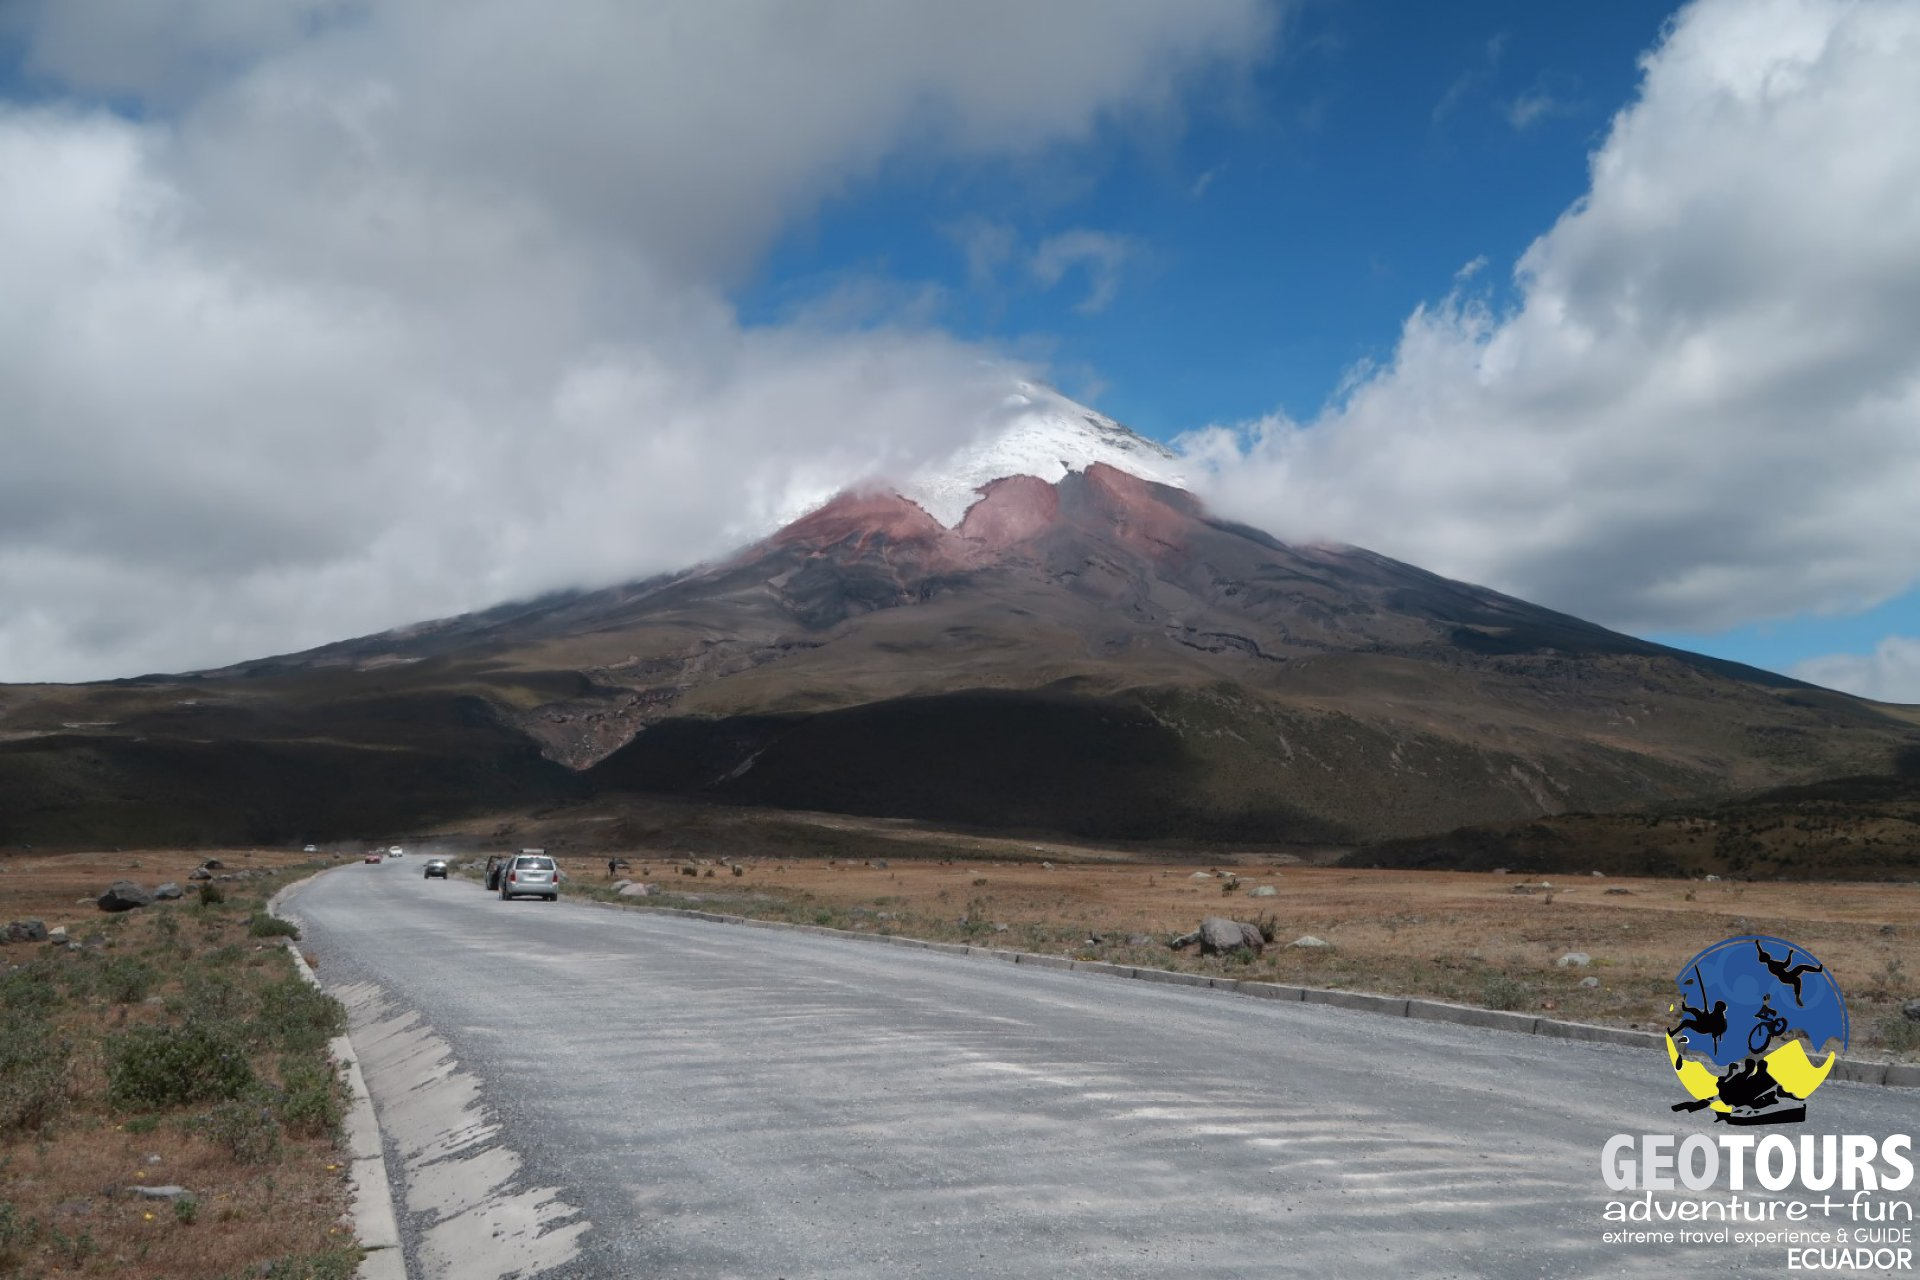 Hike & Bike Cotopaxi – Full Day Tour